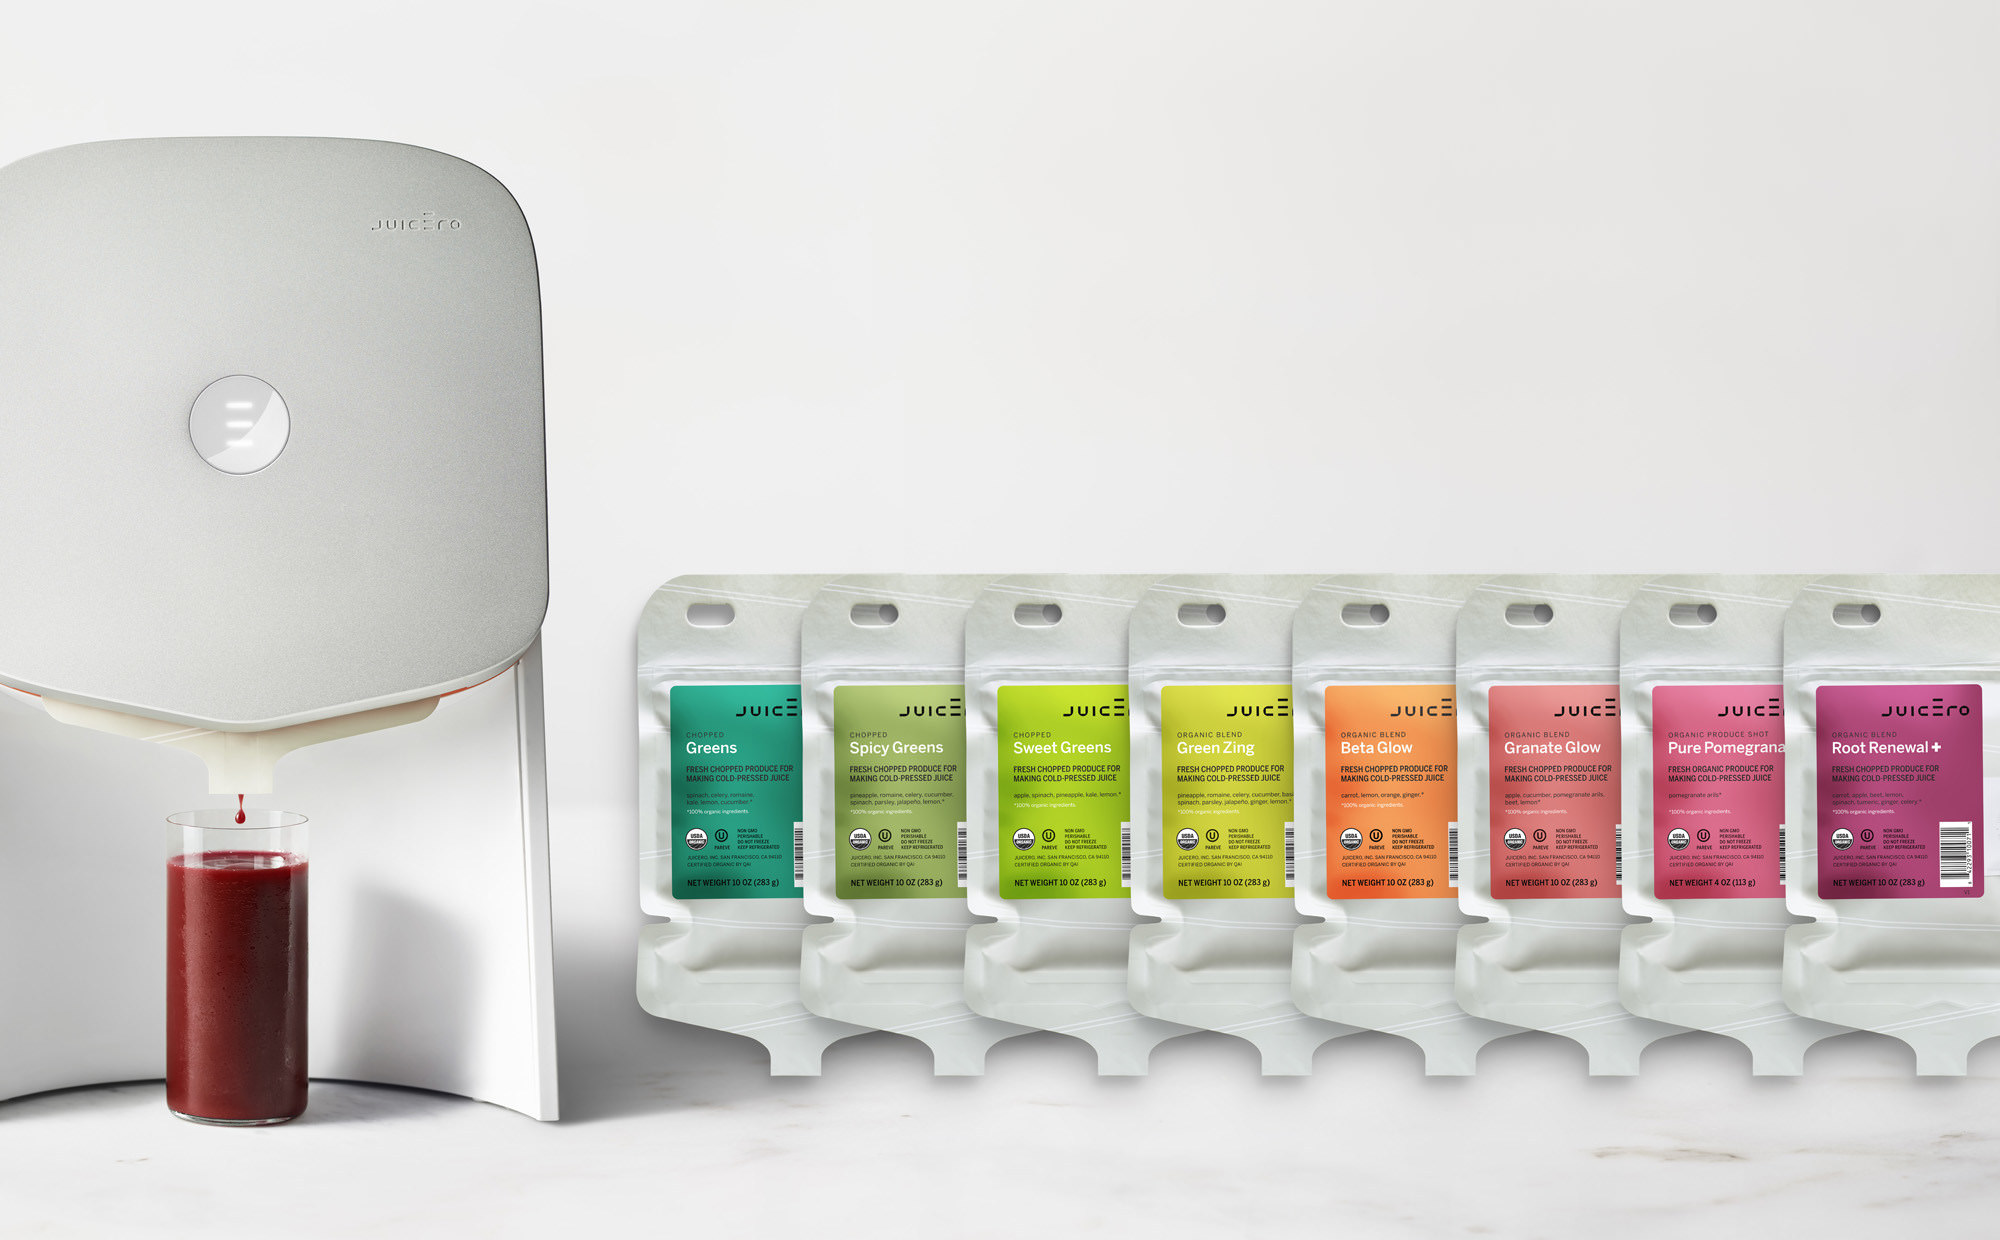 https://consumerist.com/2017/09/08/the-juicero-was-a-terrible-idea-that-became-a-money-losing-business/